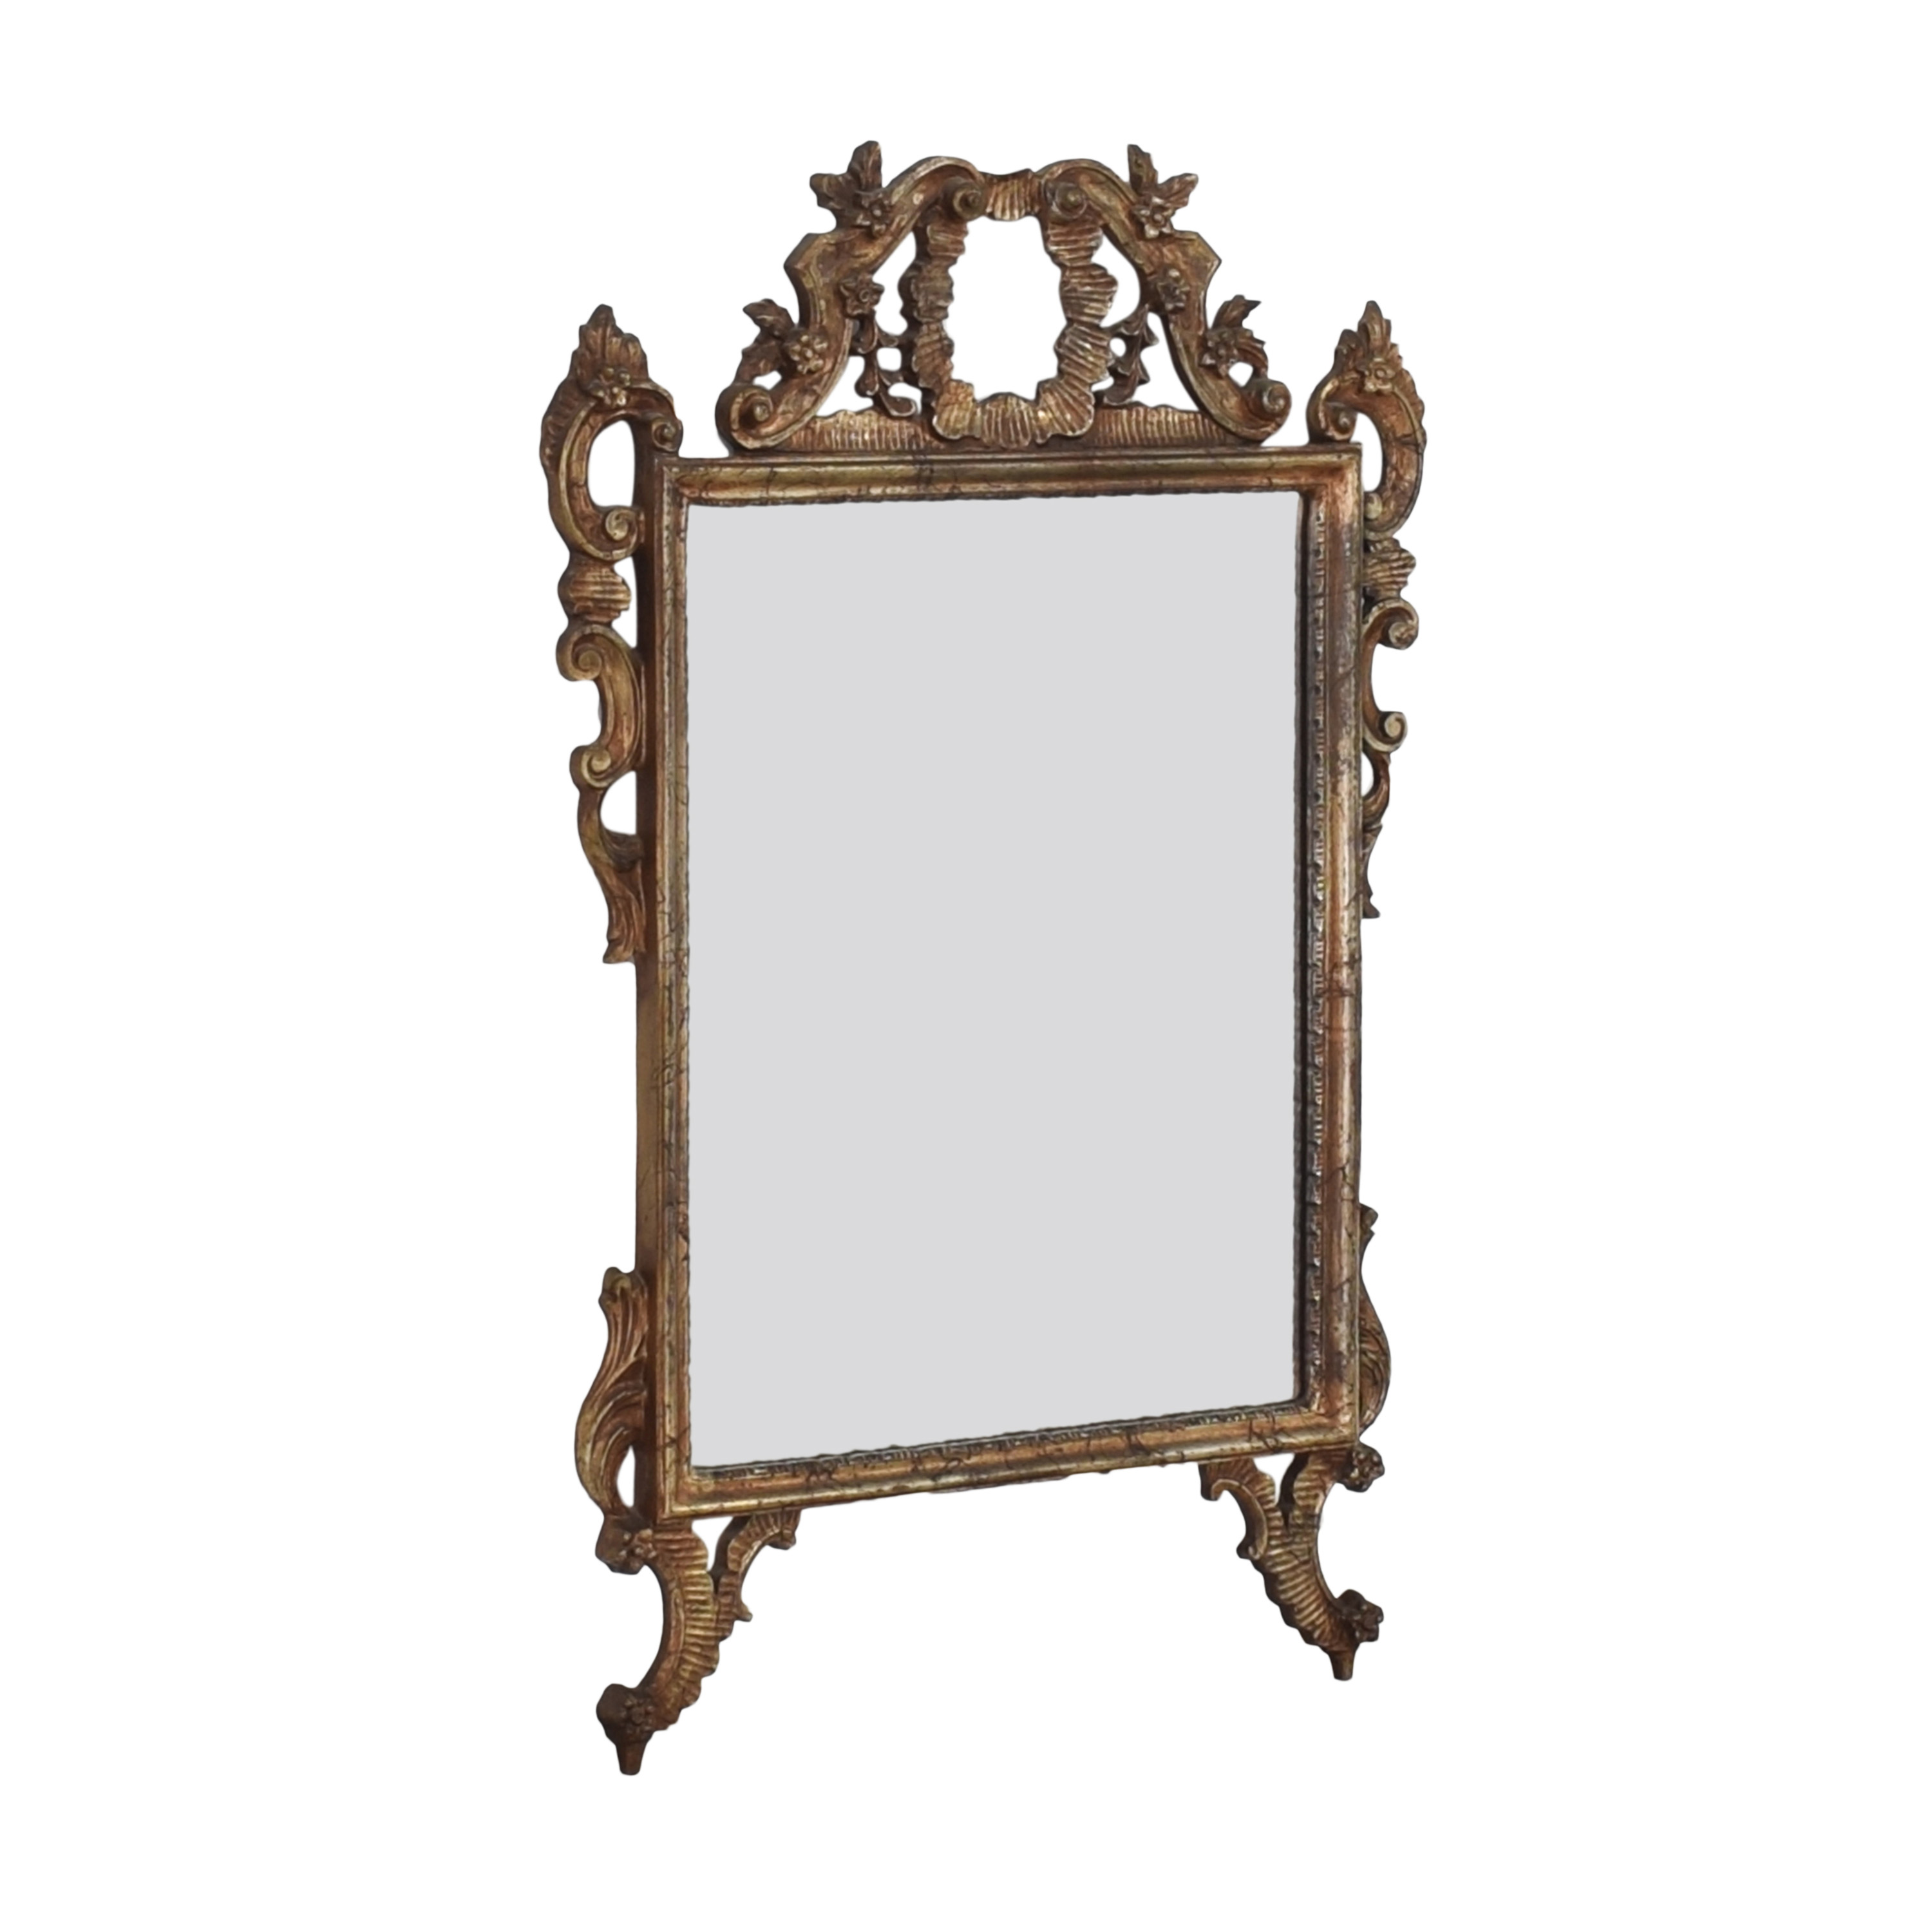 Ethan Allen Ethan Allen Carved Frame Wall Mirror dimensions